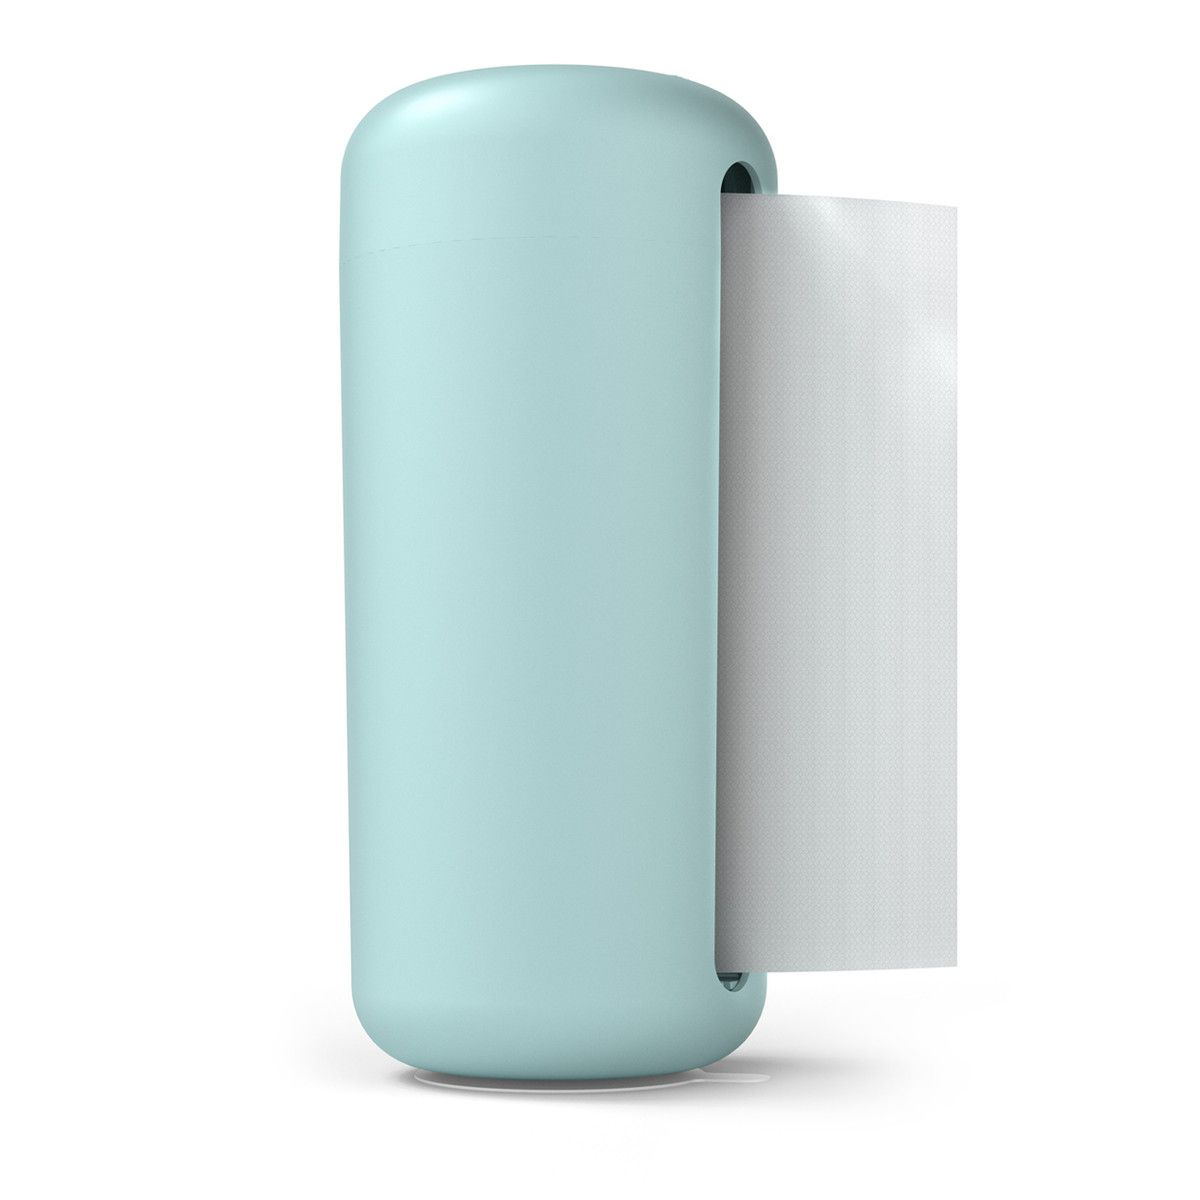 Sleek Paper Towel Holder for a fun, modern kitchen or bathroom ...